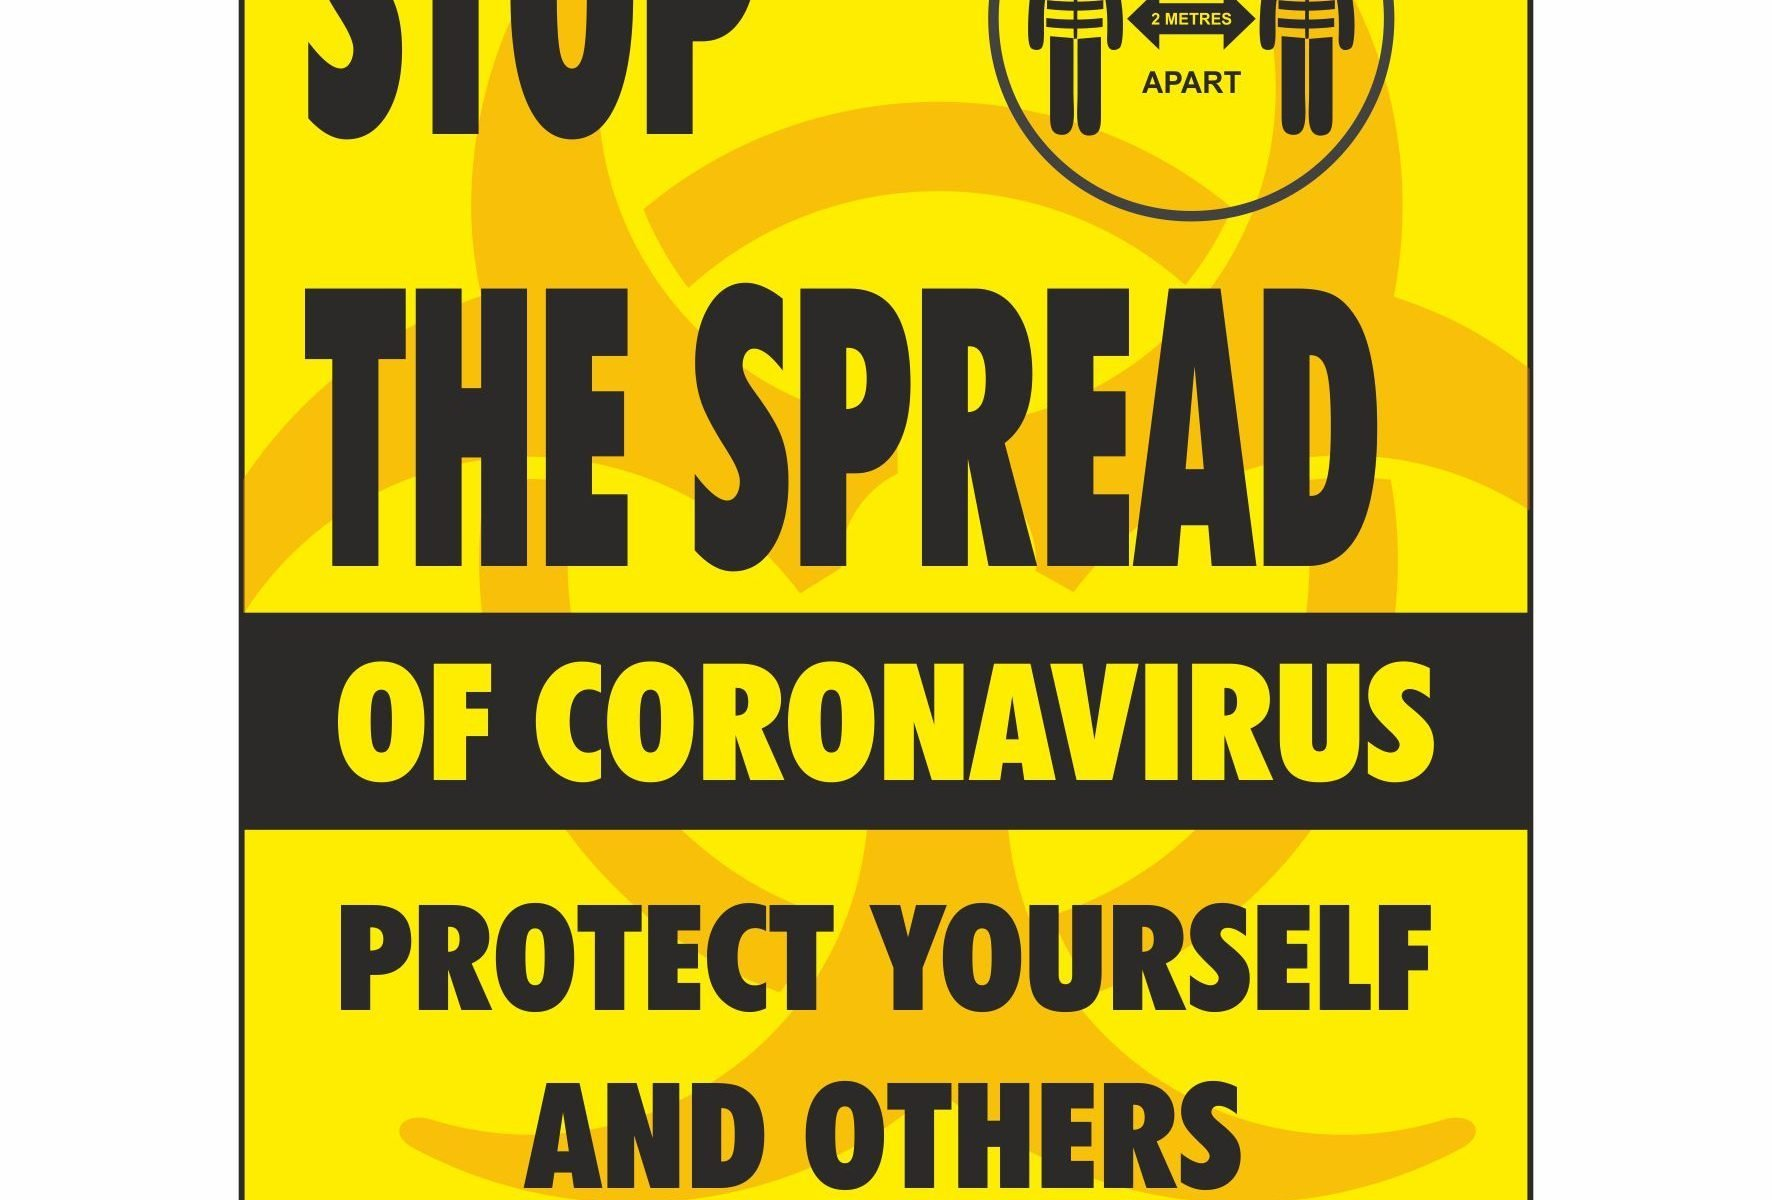 Stop the spread of coronavirus protect yourself and others around you